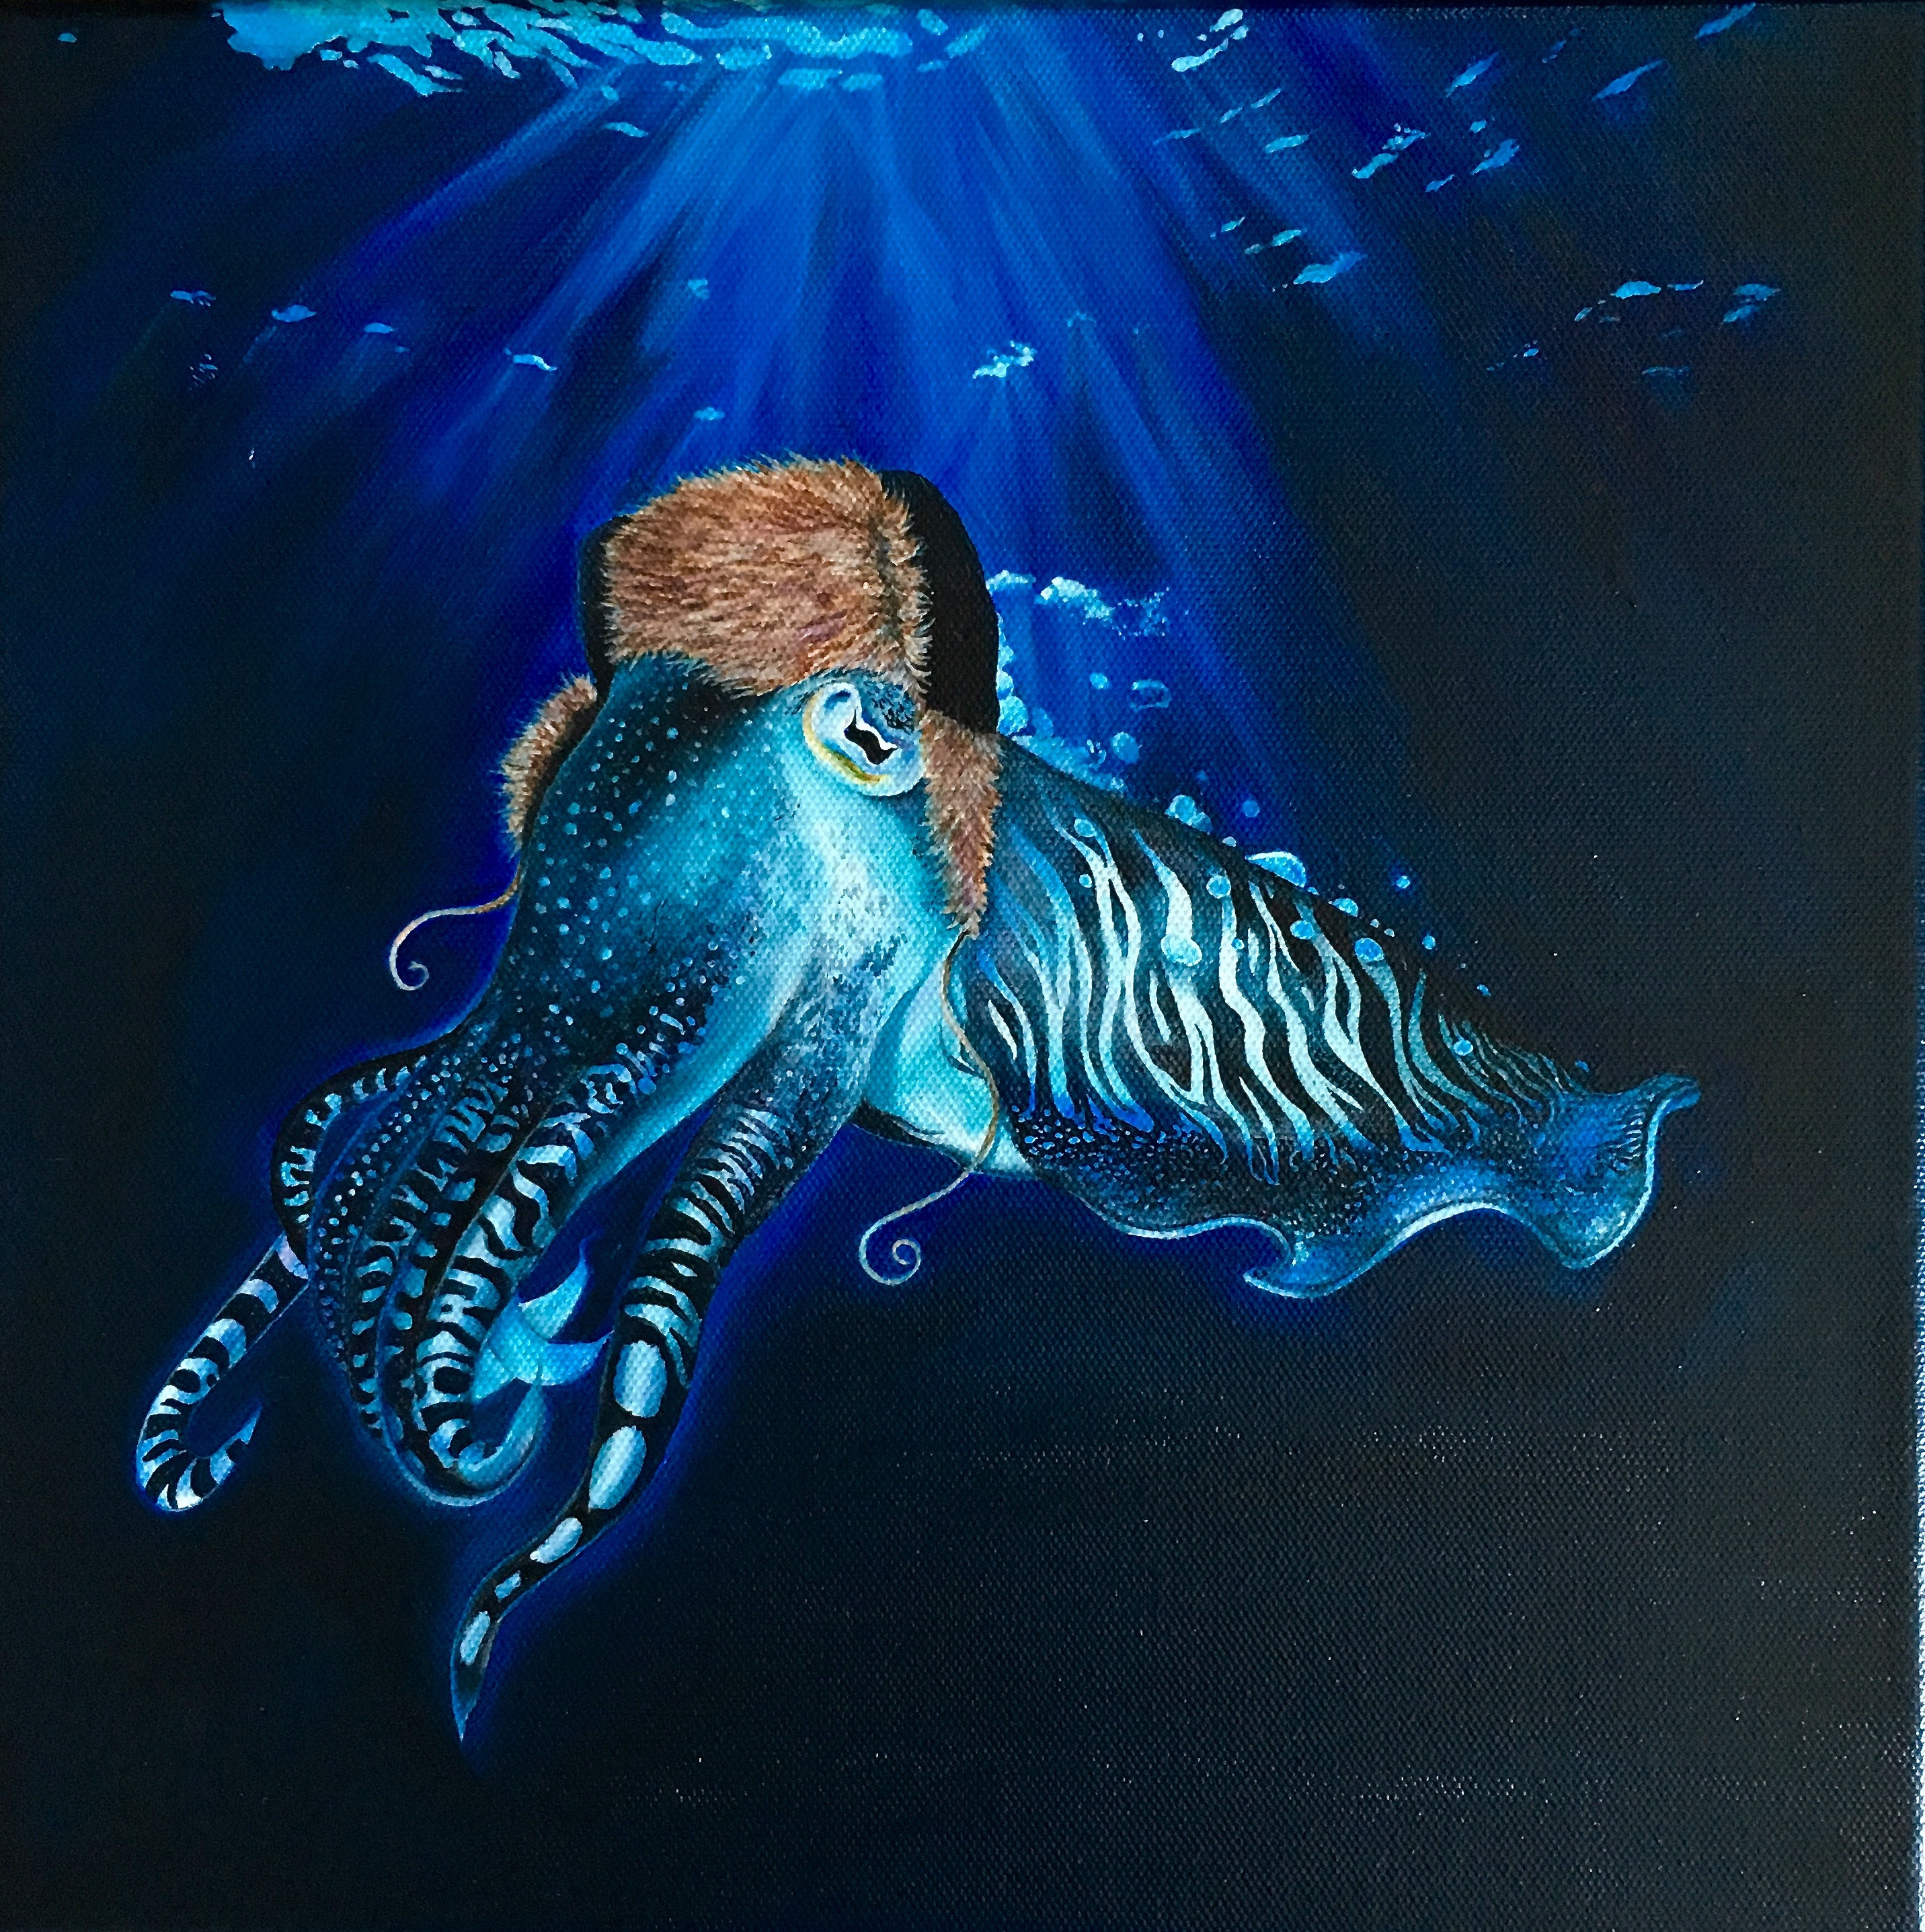 Cuttlefish in Winter Hat - Part 1 of triptych